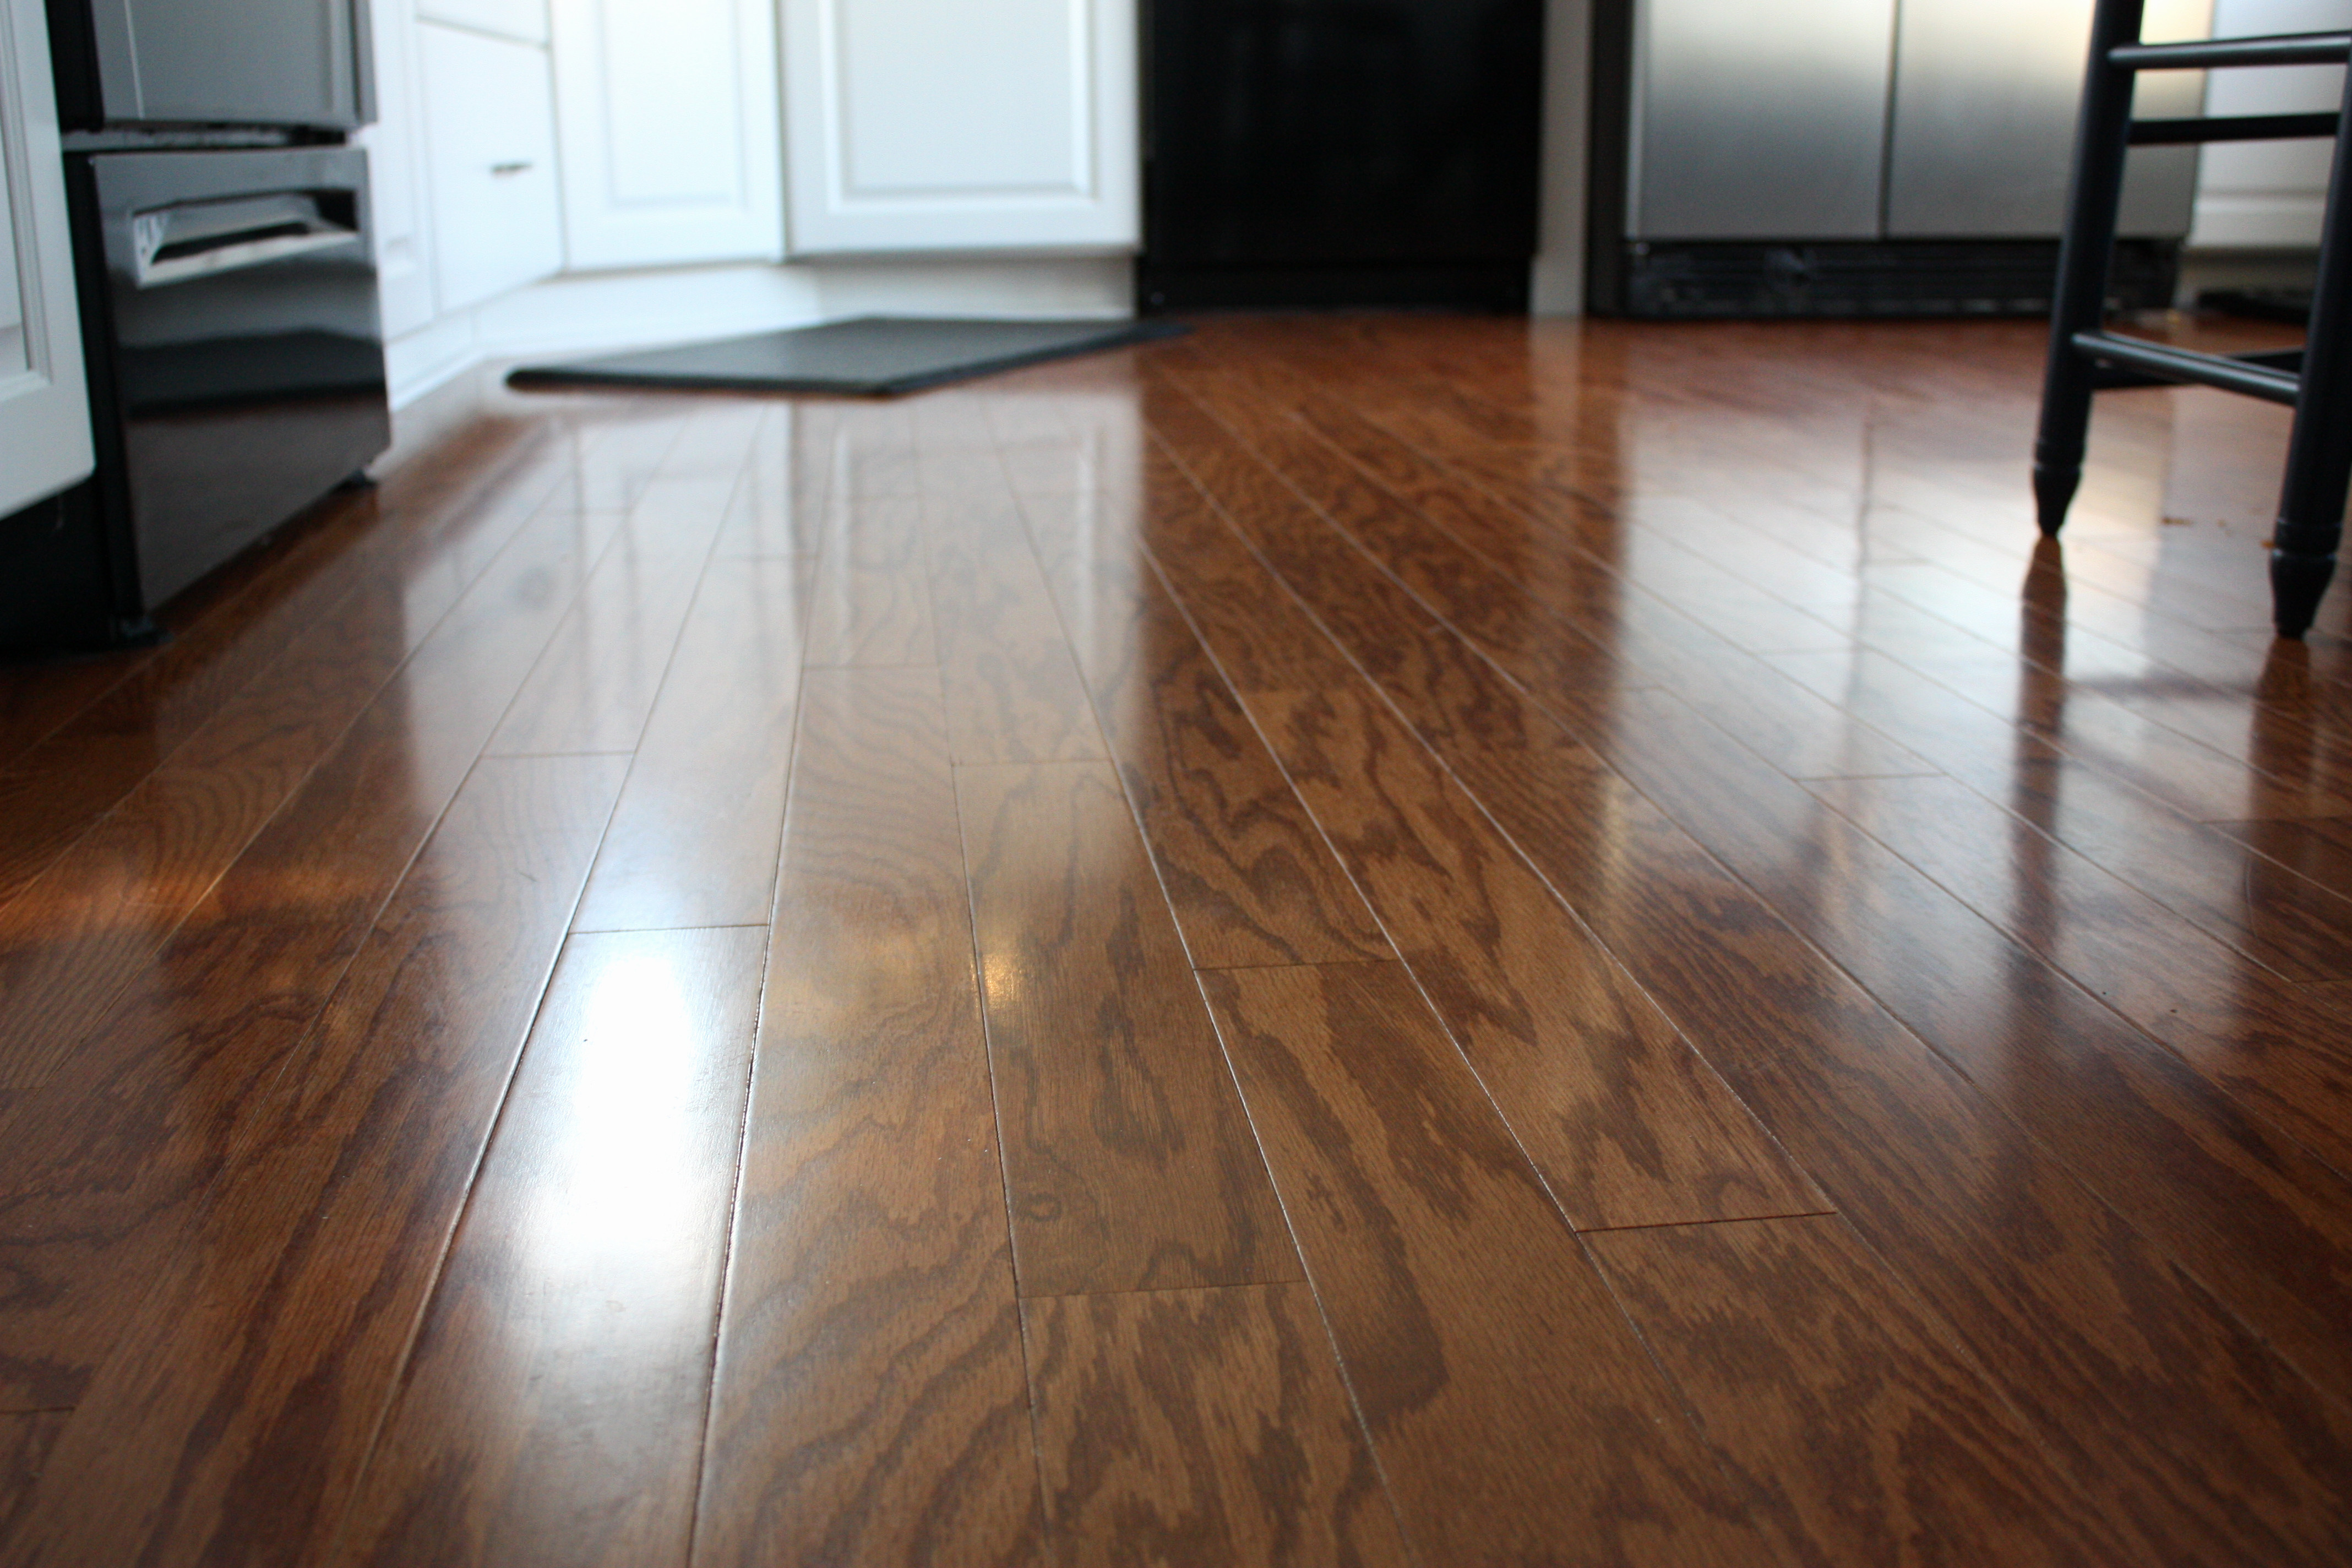 kentwood hardwood flooring reviews of the wood maker page 6 wood wallpaper pertaining to floor floorod cleaning hardwood carpet lake forest il rare image ideas of wood floor steam cleaner